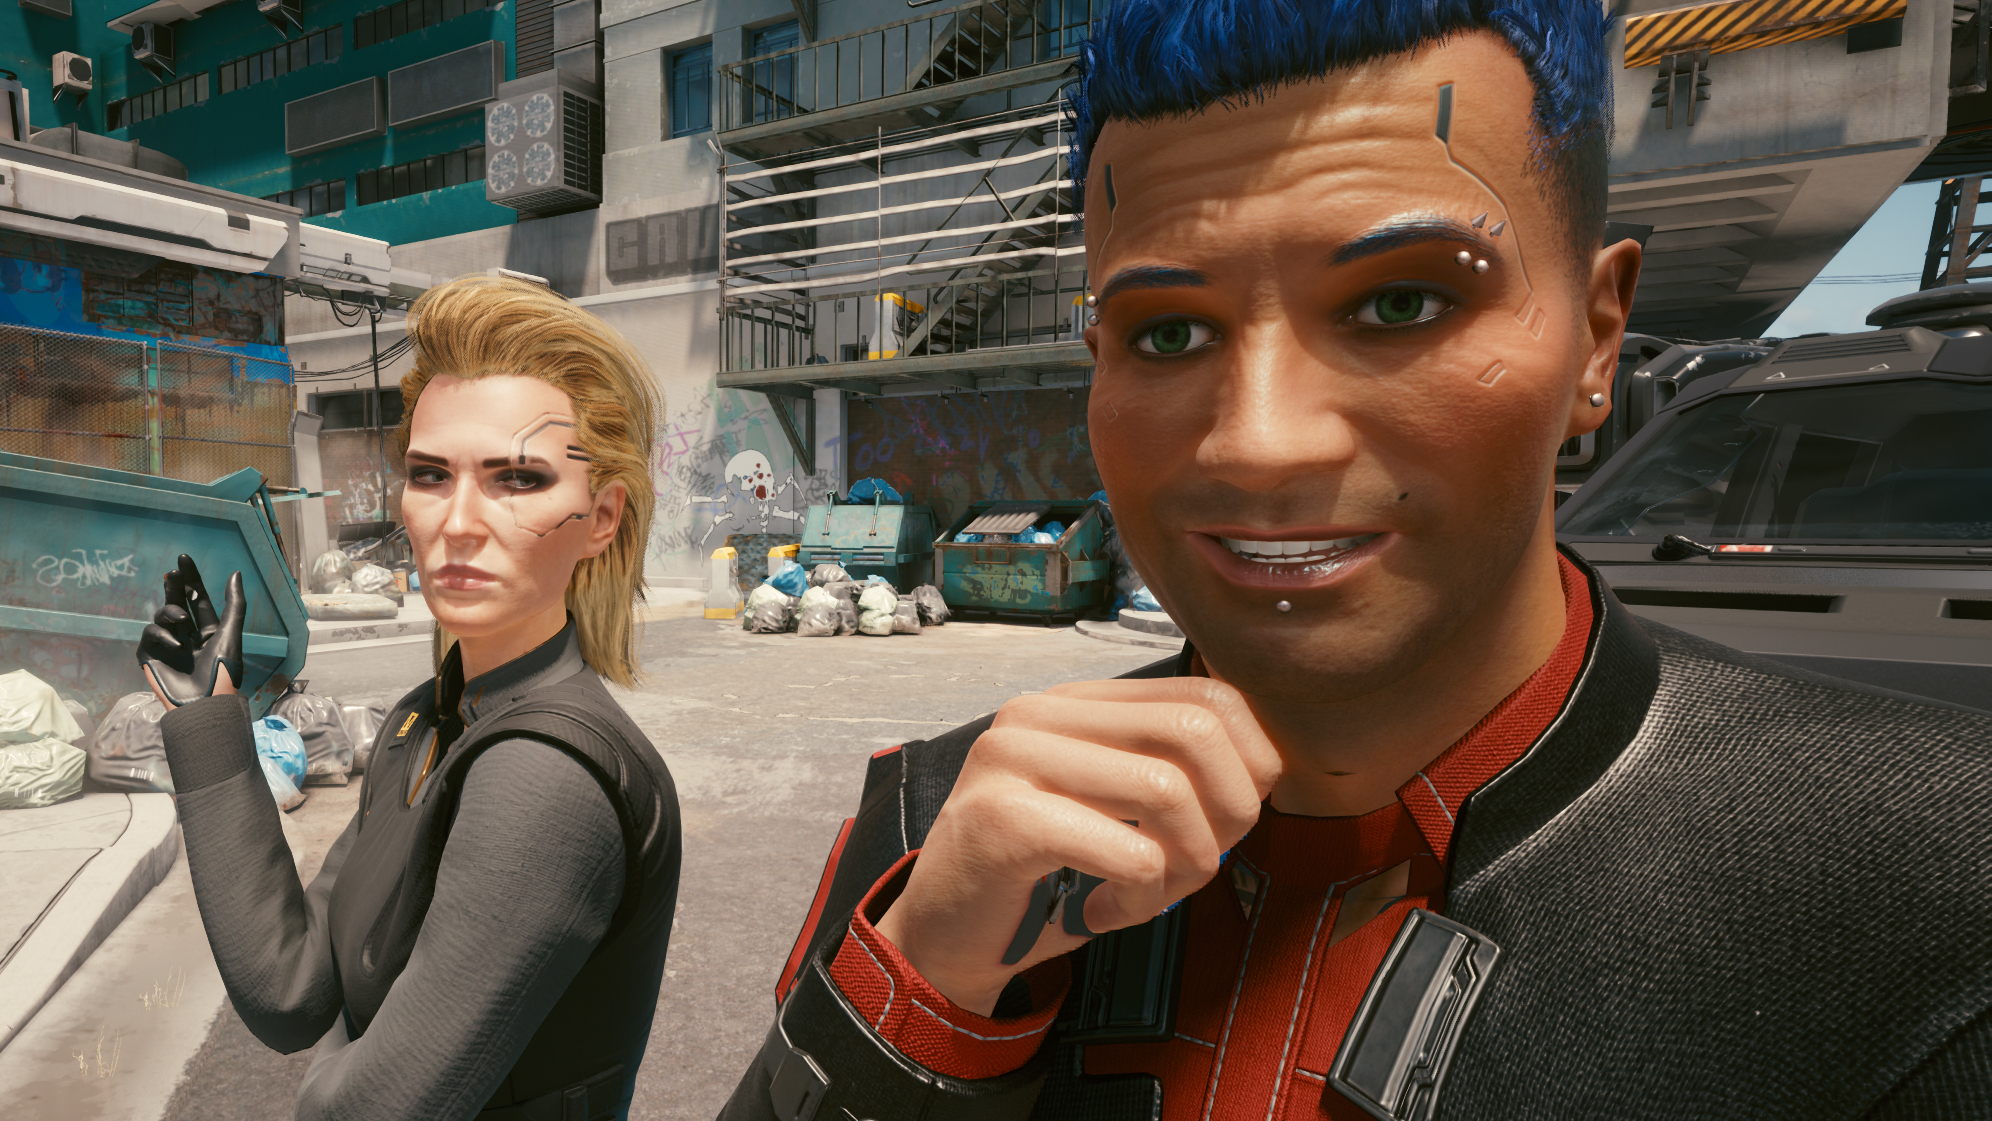 Cyberpunk 2077 staff knew how bad the bugs were before launch, confirms report